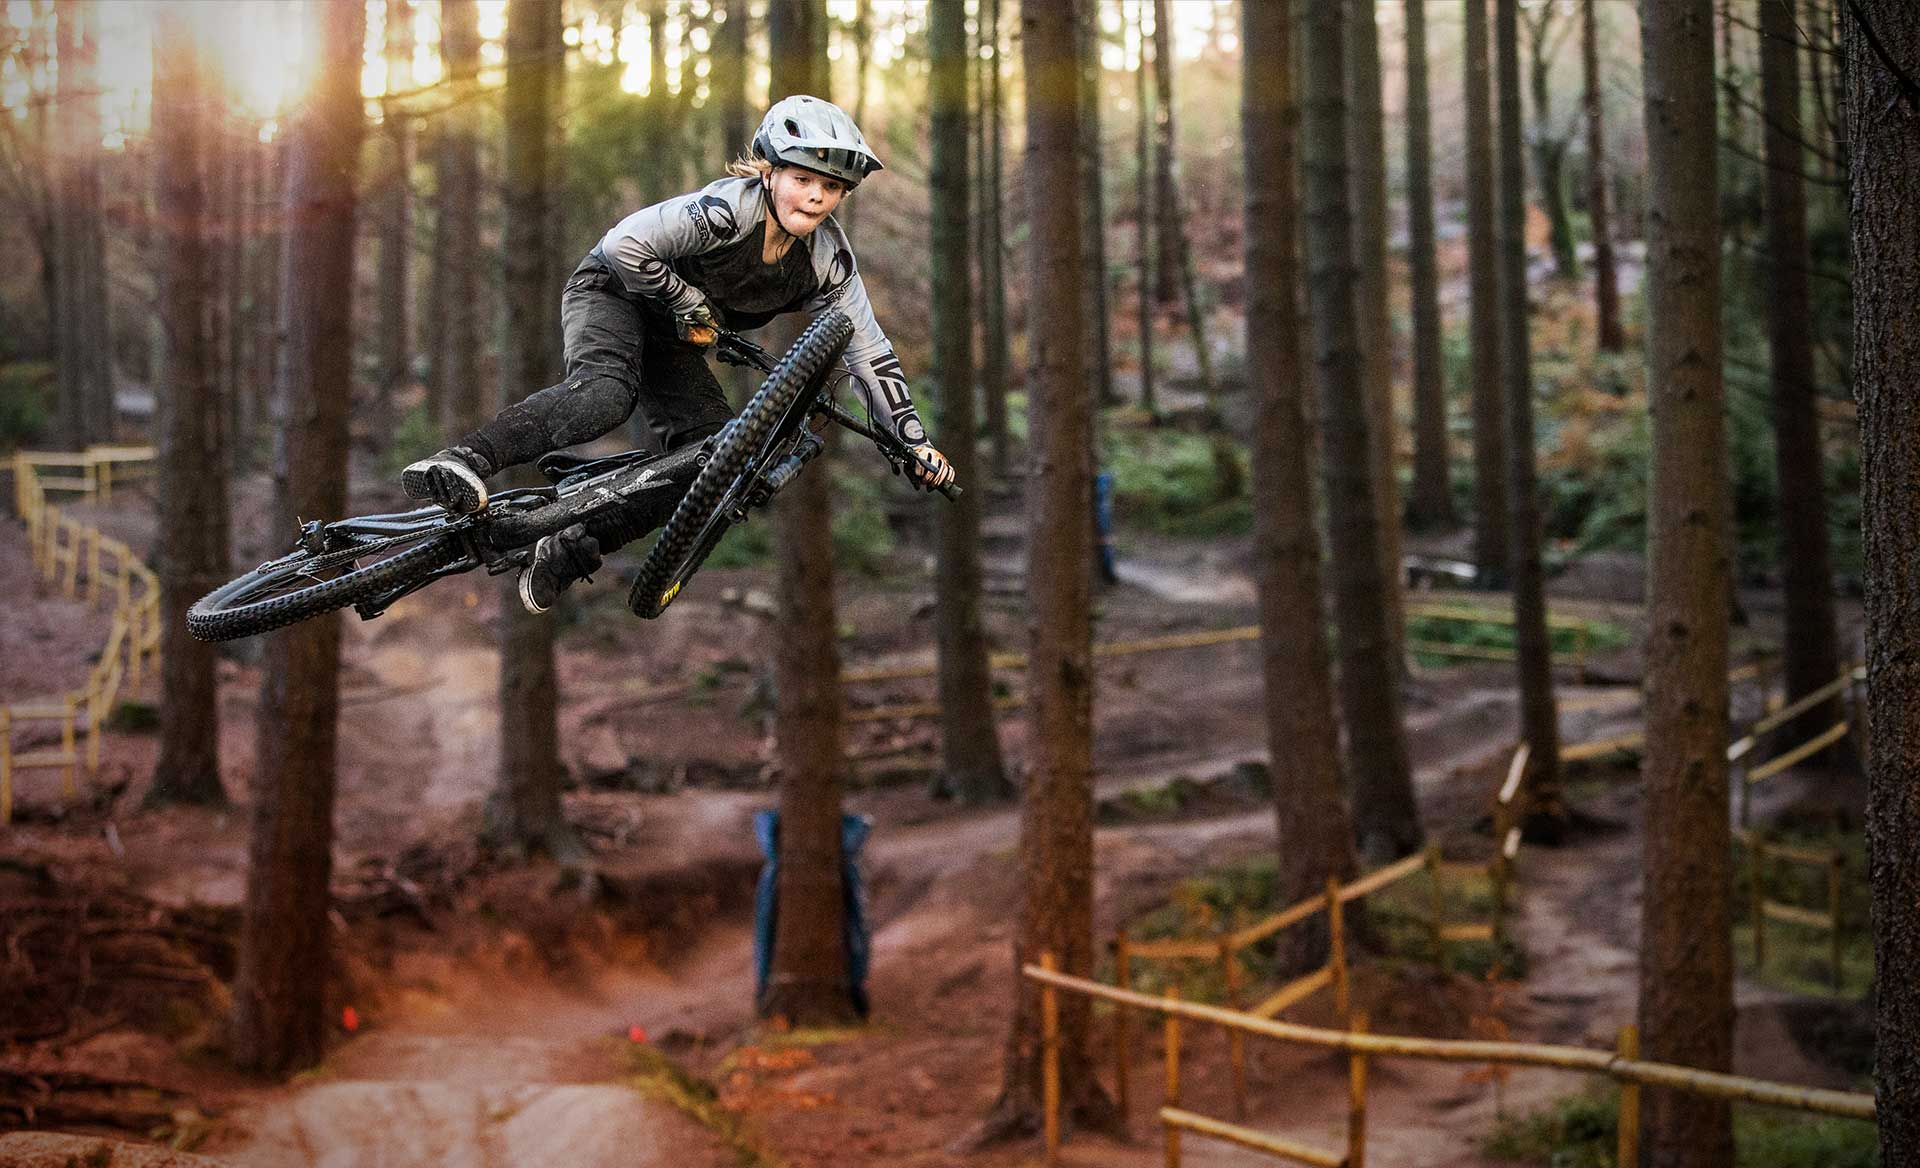 YT Industries Debuts Smaller Jeffsy Primus for Younger and Shorter Mountain Bikers - Singletracks Mountain Bike News